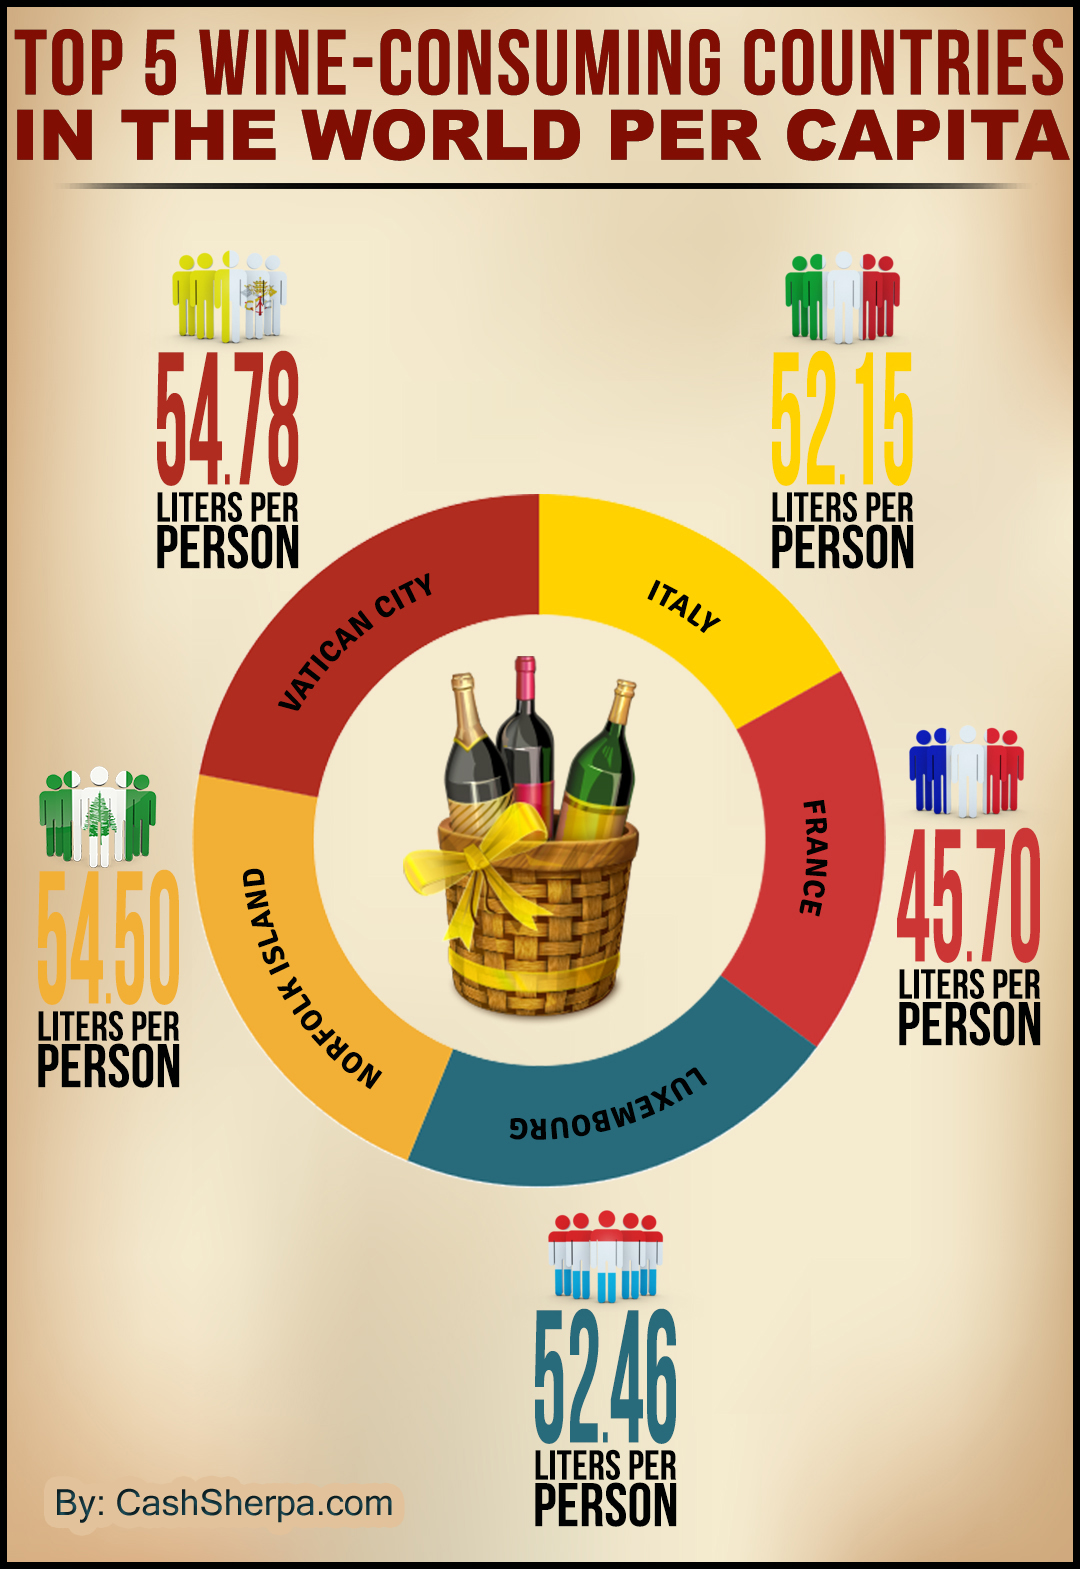 Top 5 Wine Consuming Countries Top Wine Consuming Countries Per Capita: Infographic